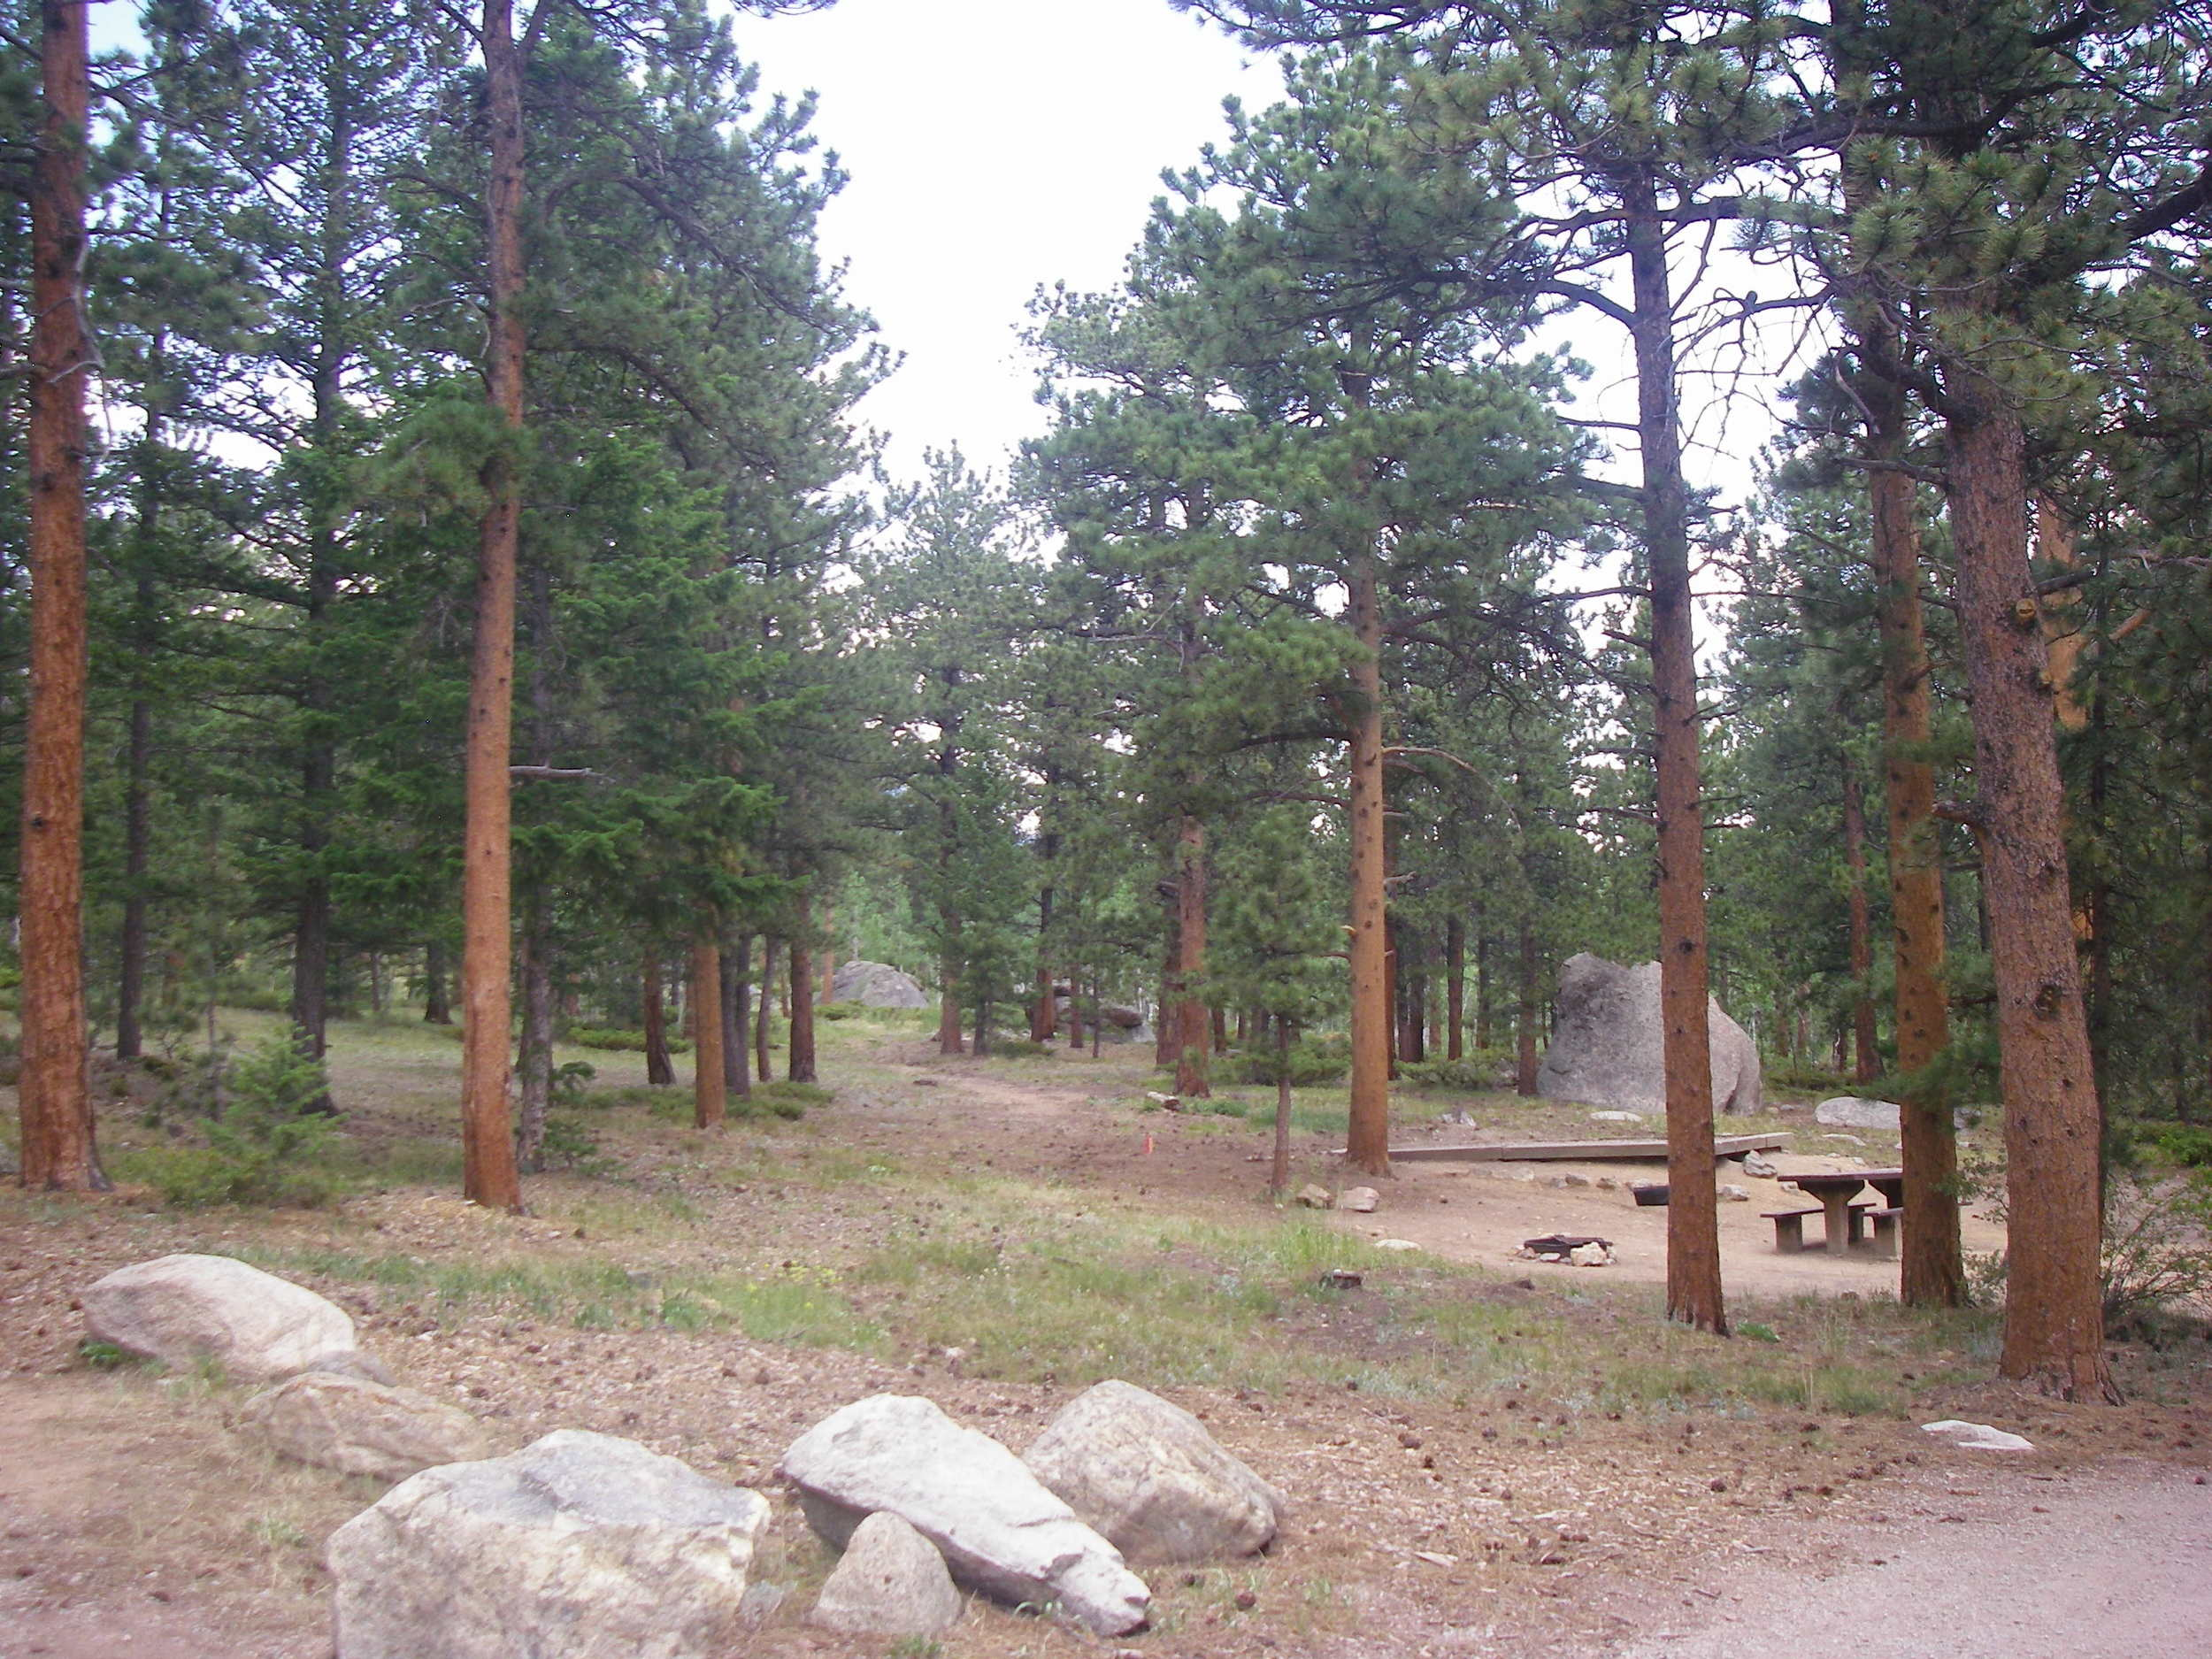 Olive Ridge Campground, Arapaho NF, CO